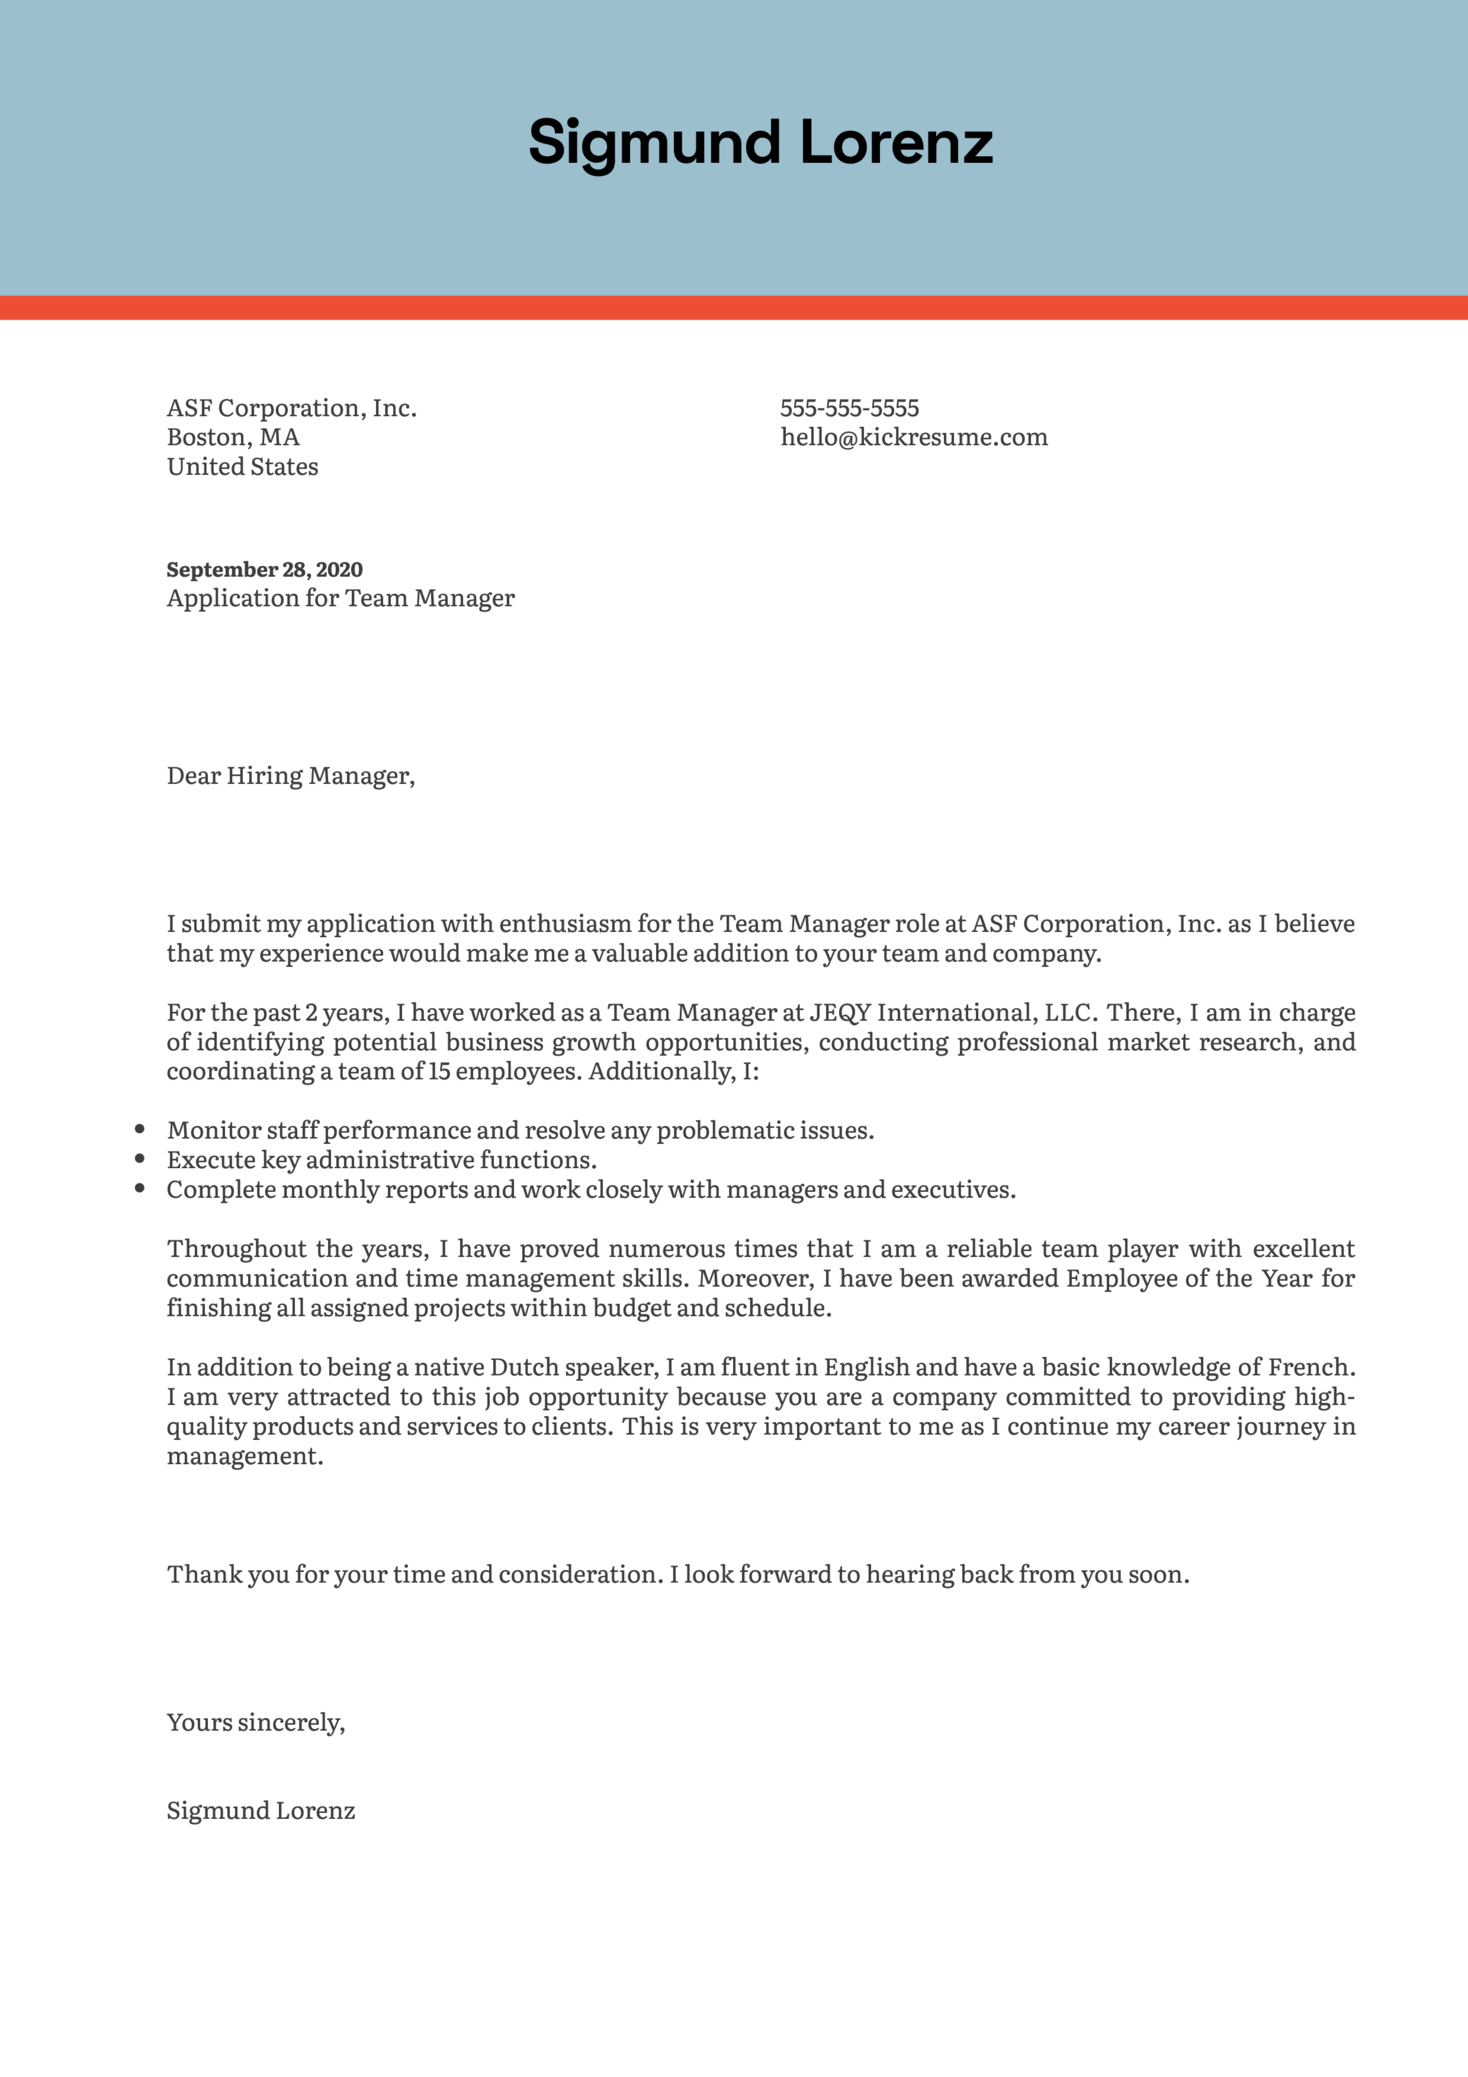 Team Manager Cover Letter Example